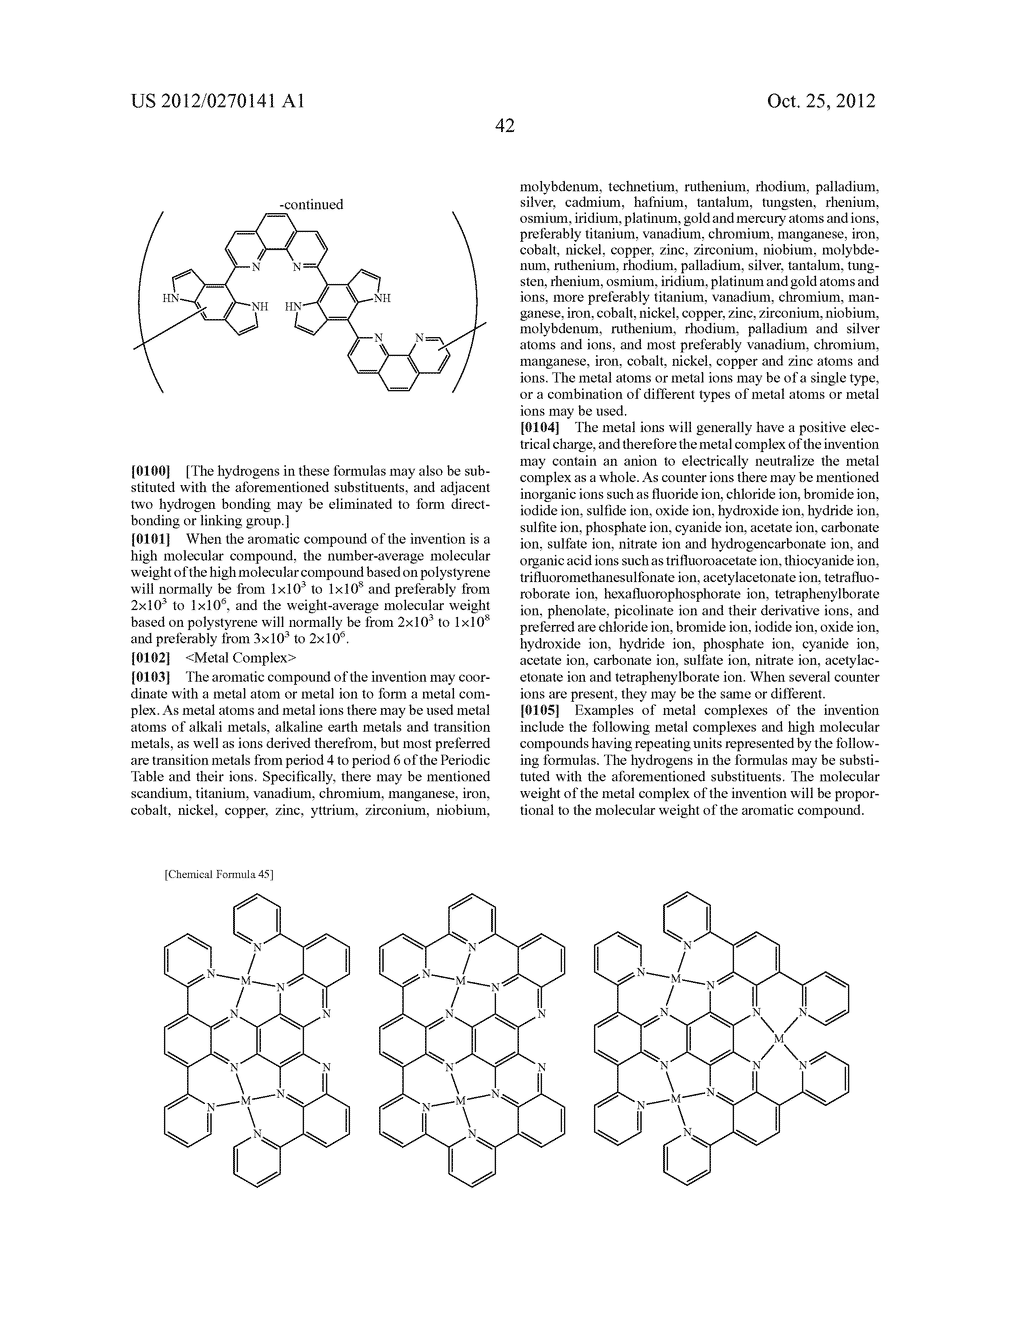 NITROGEN-CONTAINING AROMATIC COMPOUNDS AND METAL COMPLEXES - diagram, schematic, and image 43